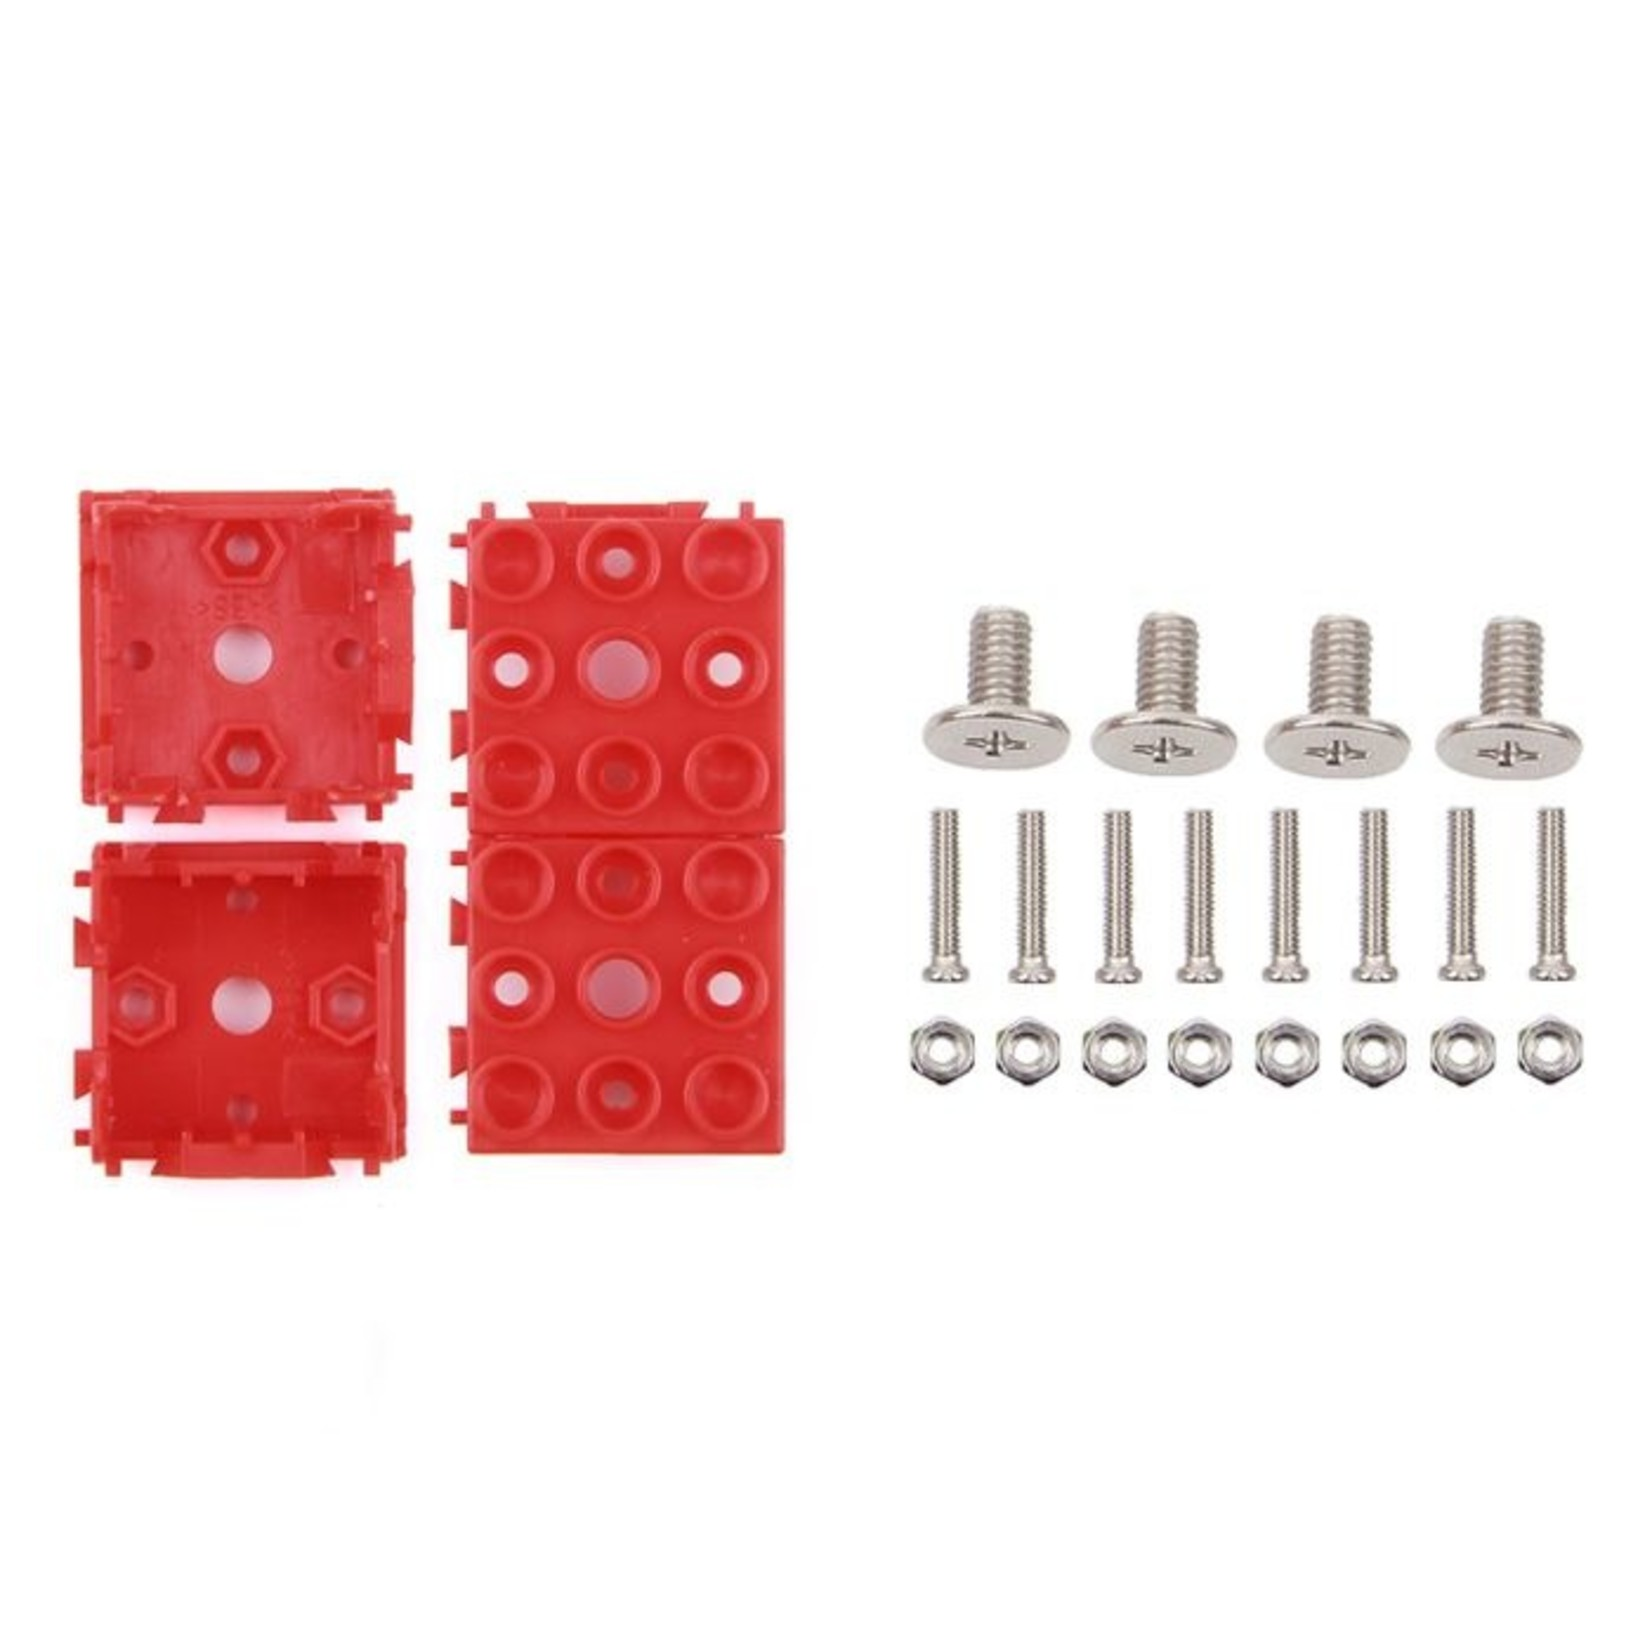 Seeed Grove - Red Wrapper 1*1 (4-pack)